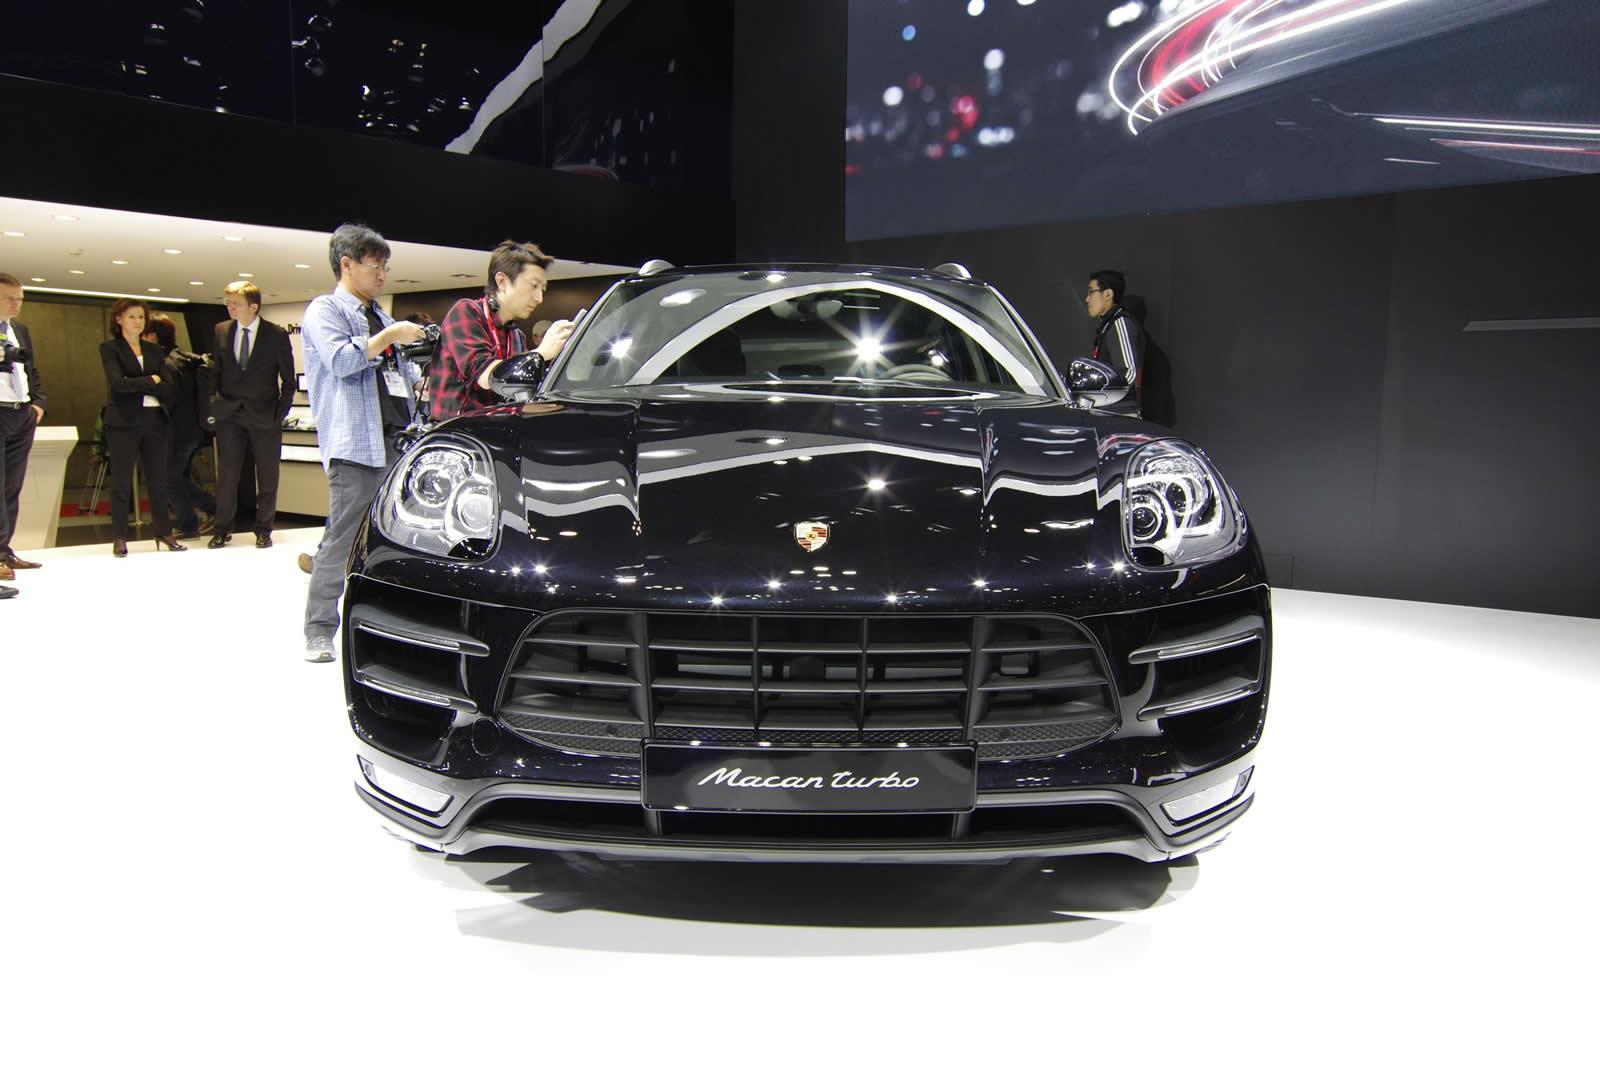 Macan Turbo front